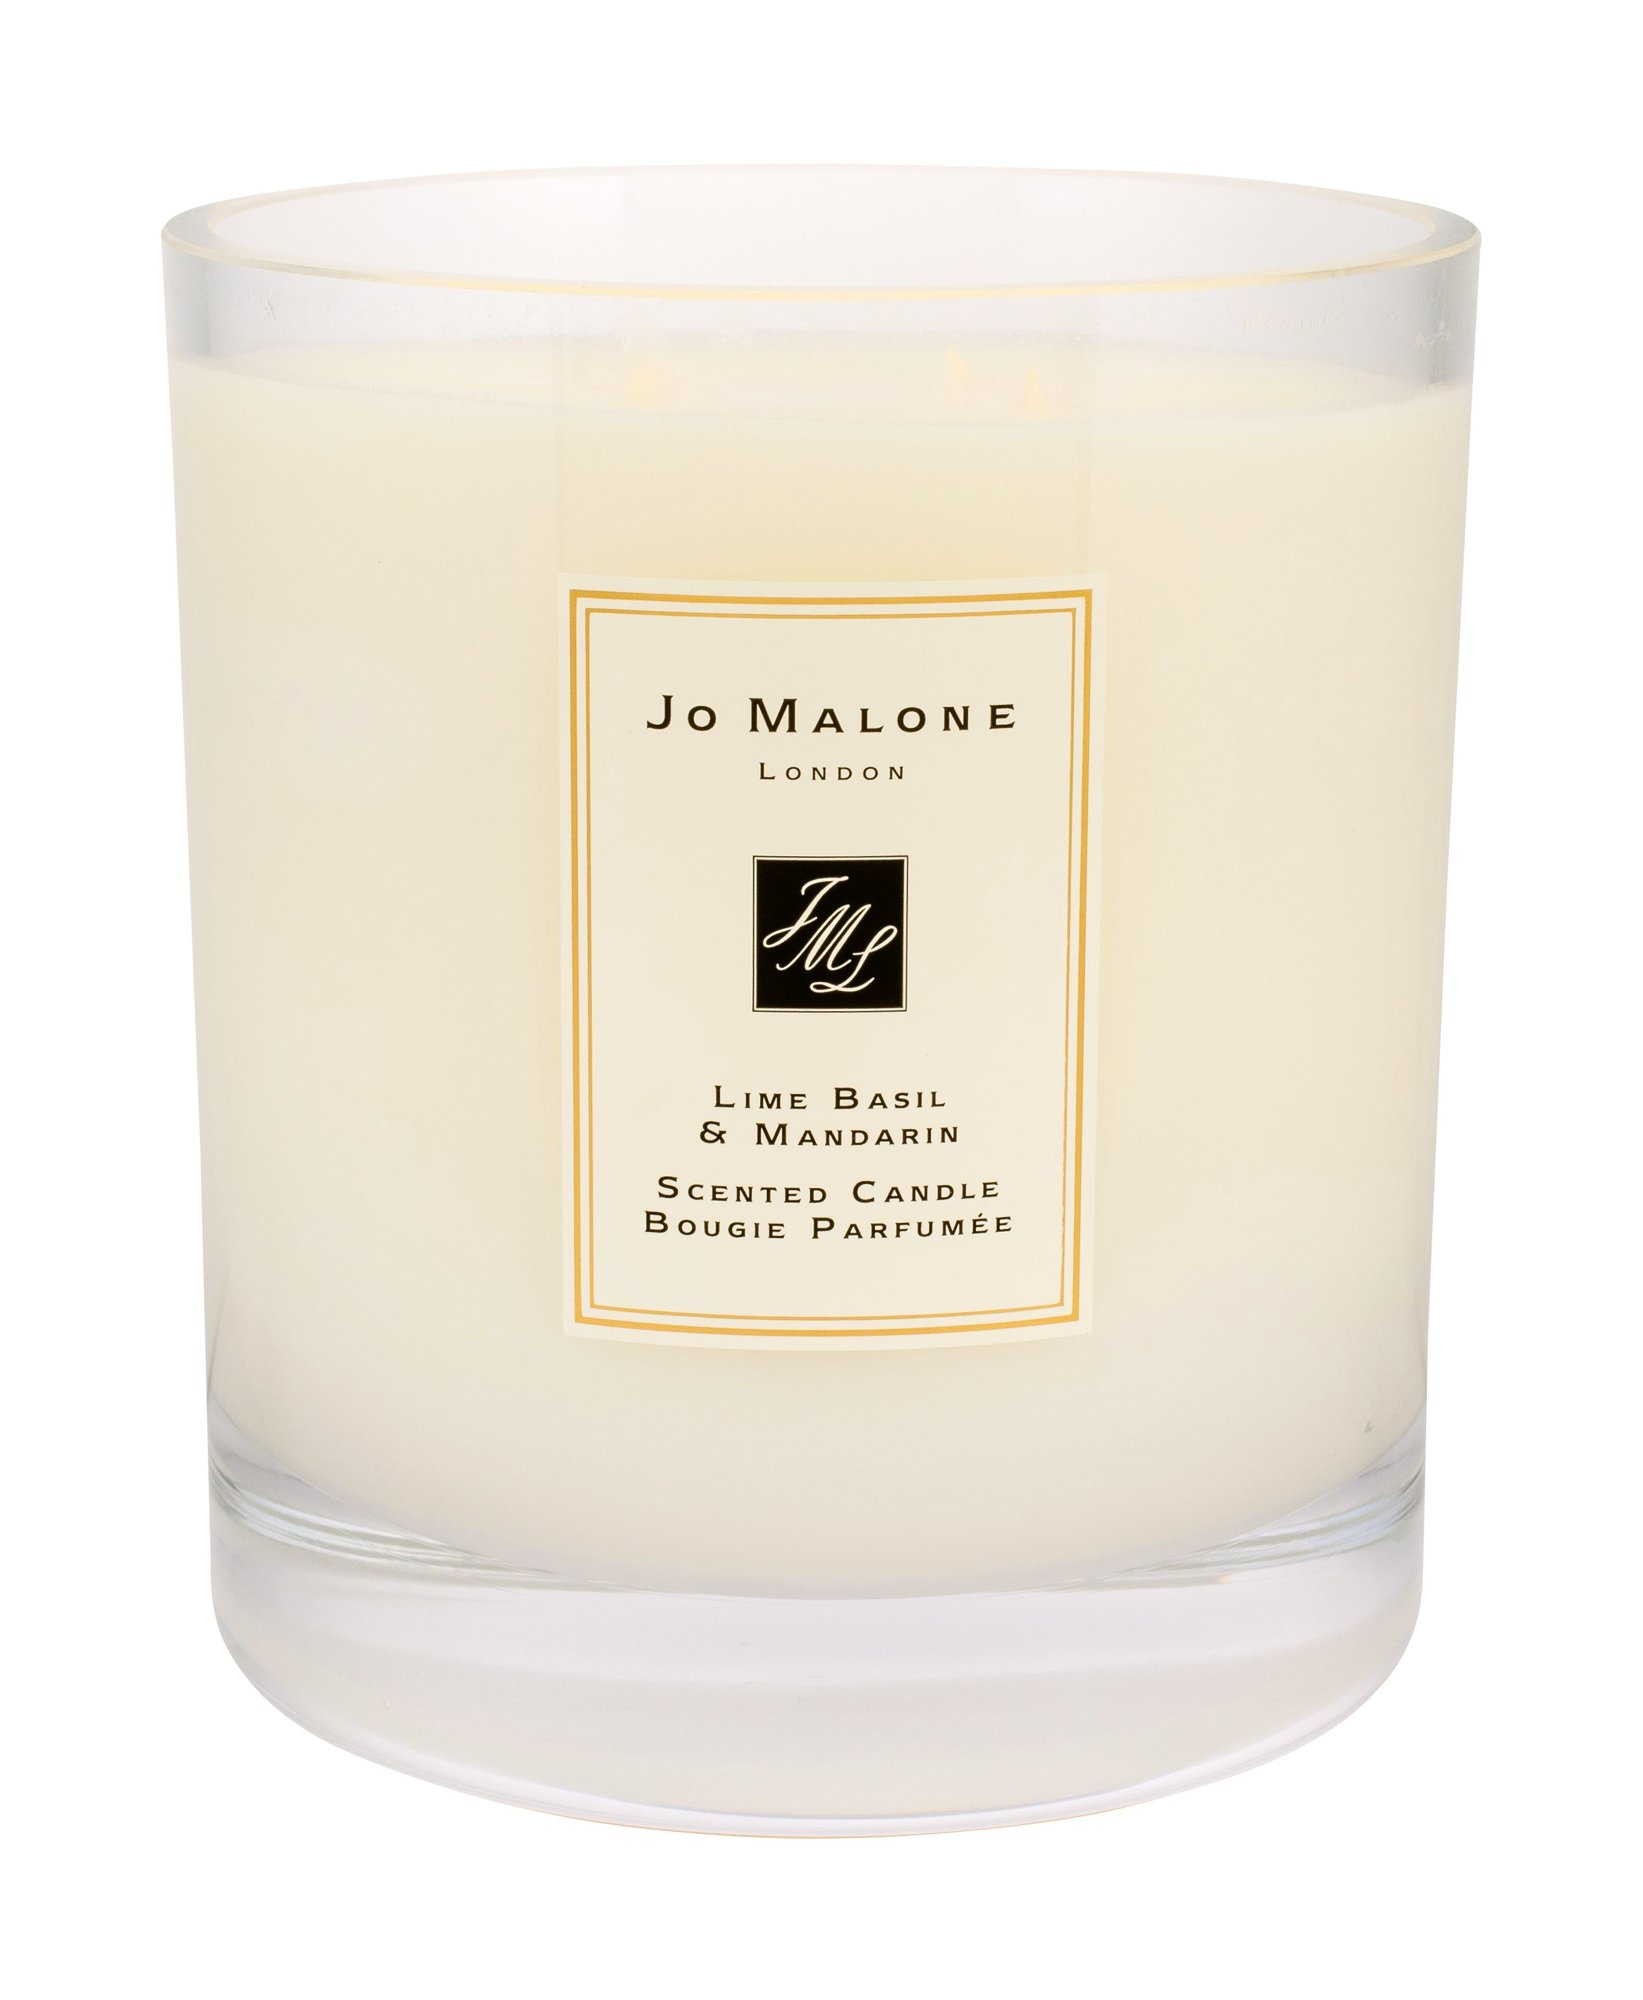 Jo Malone Lime Basil & Mandarin Scented Candle 2500ml